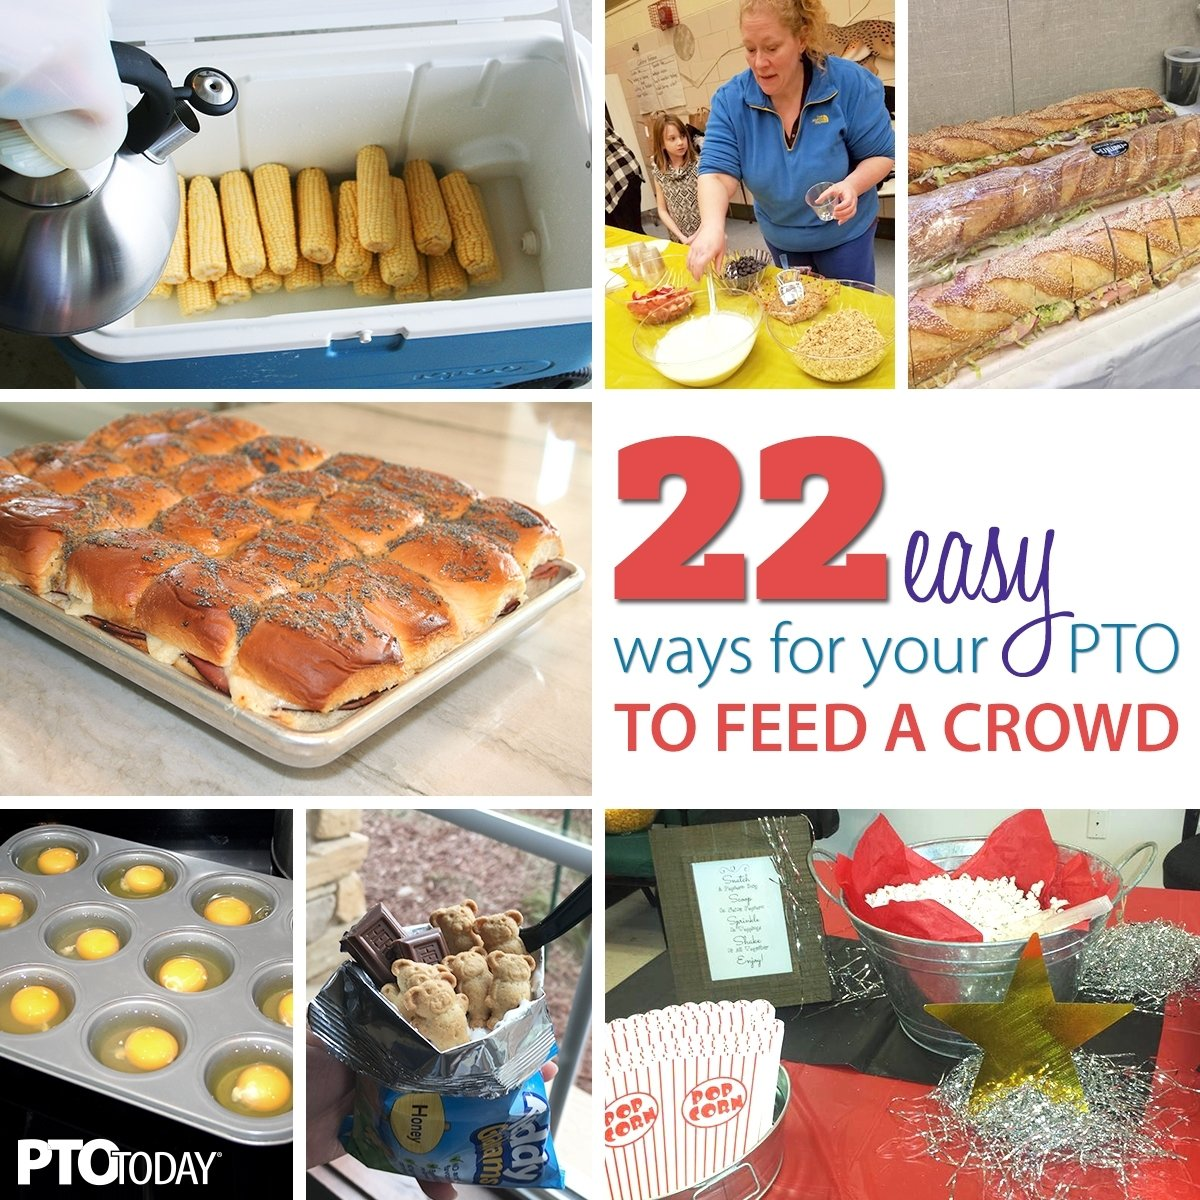 10 Awesome Luncheon Ideas For A Crowd 22 easy meal ideas for large groups pto today 18 2020